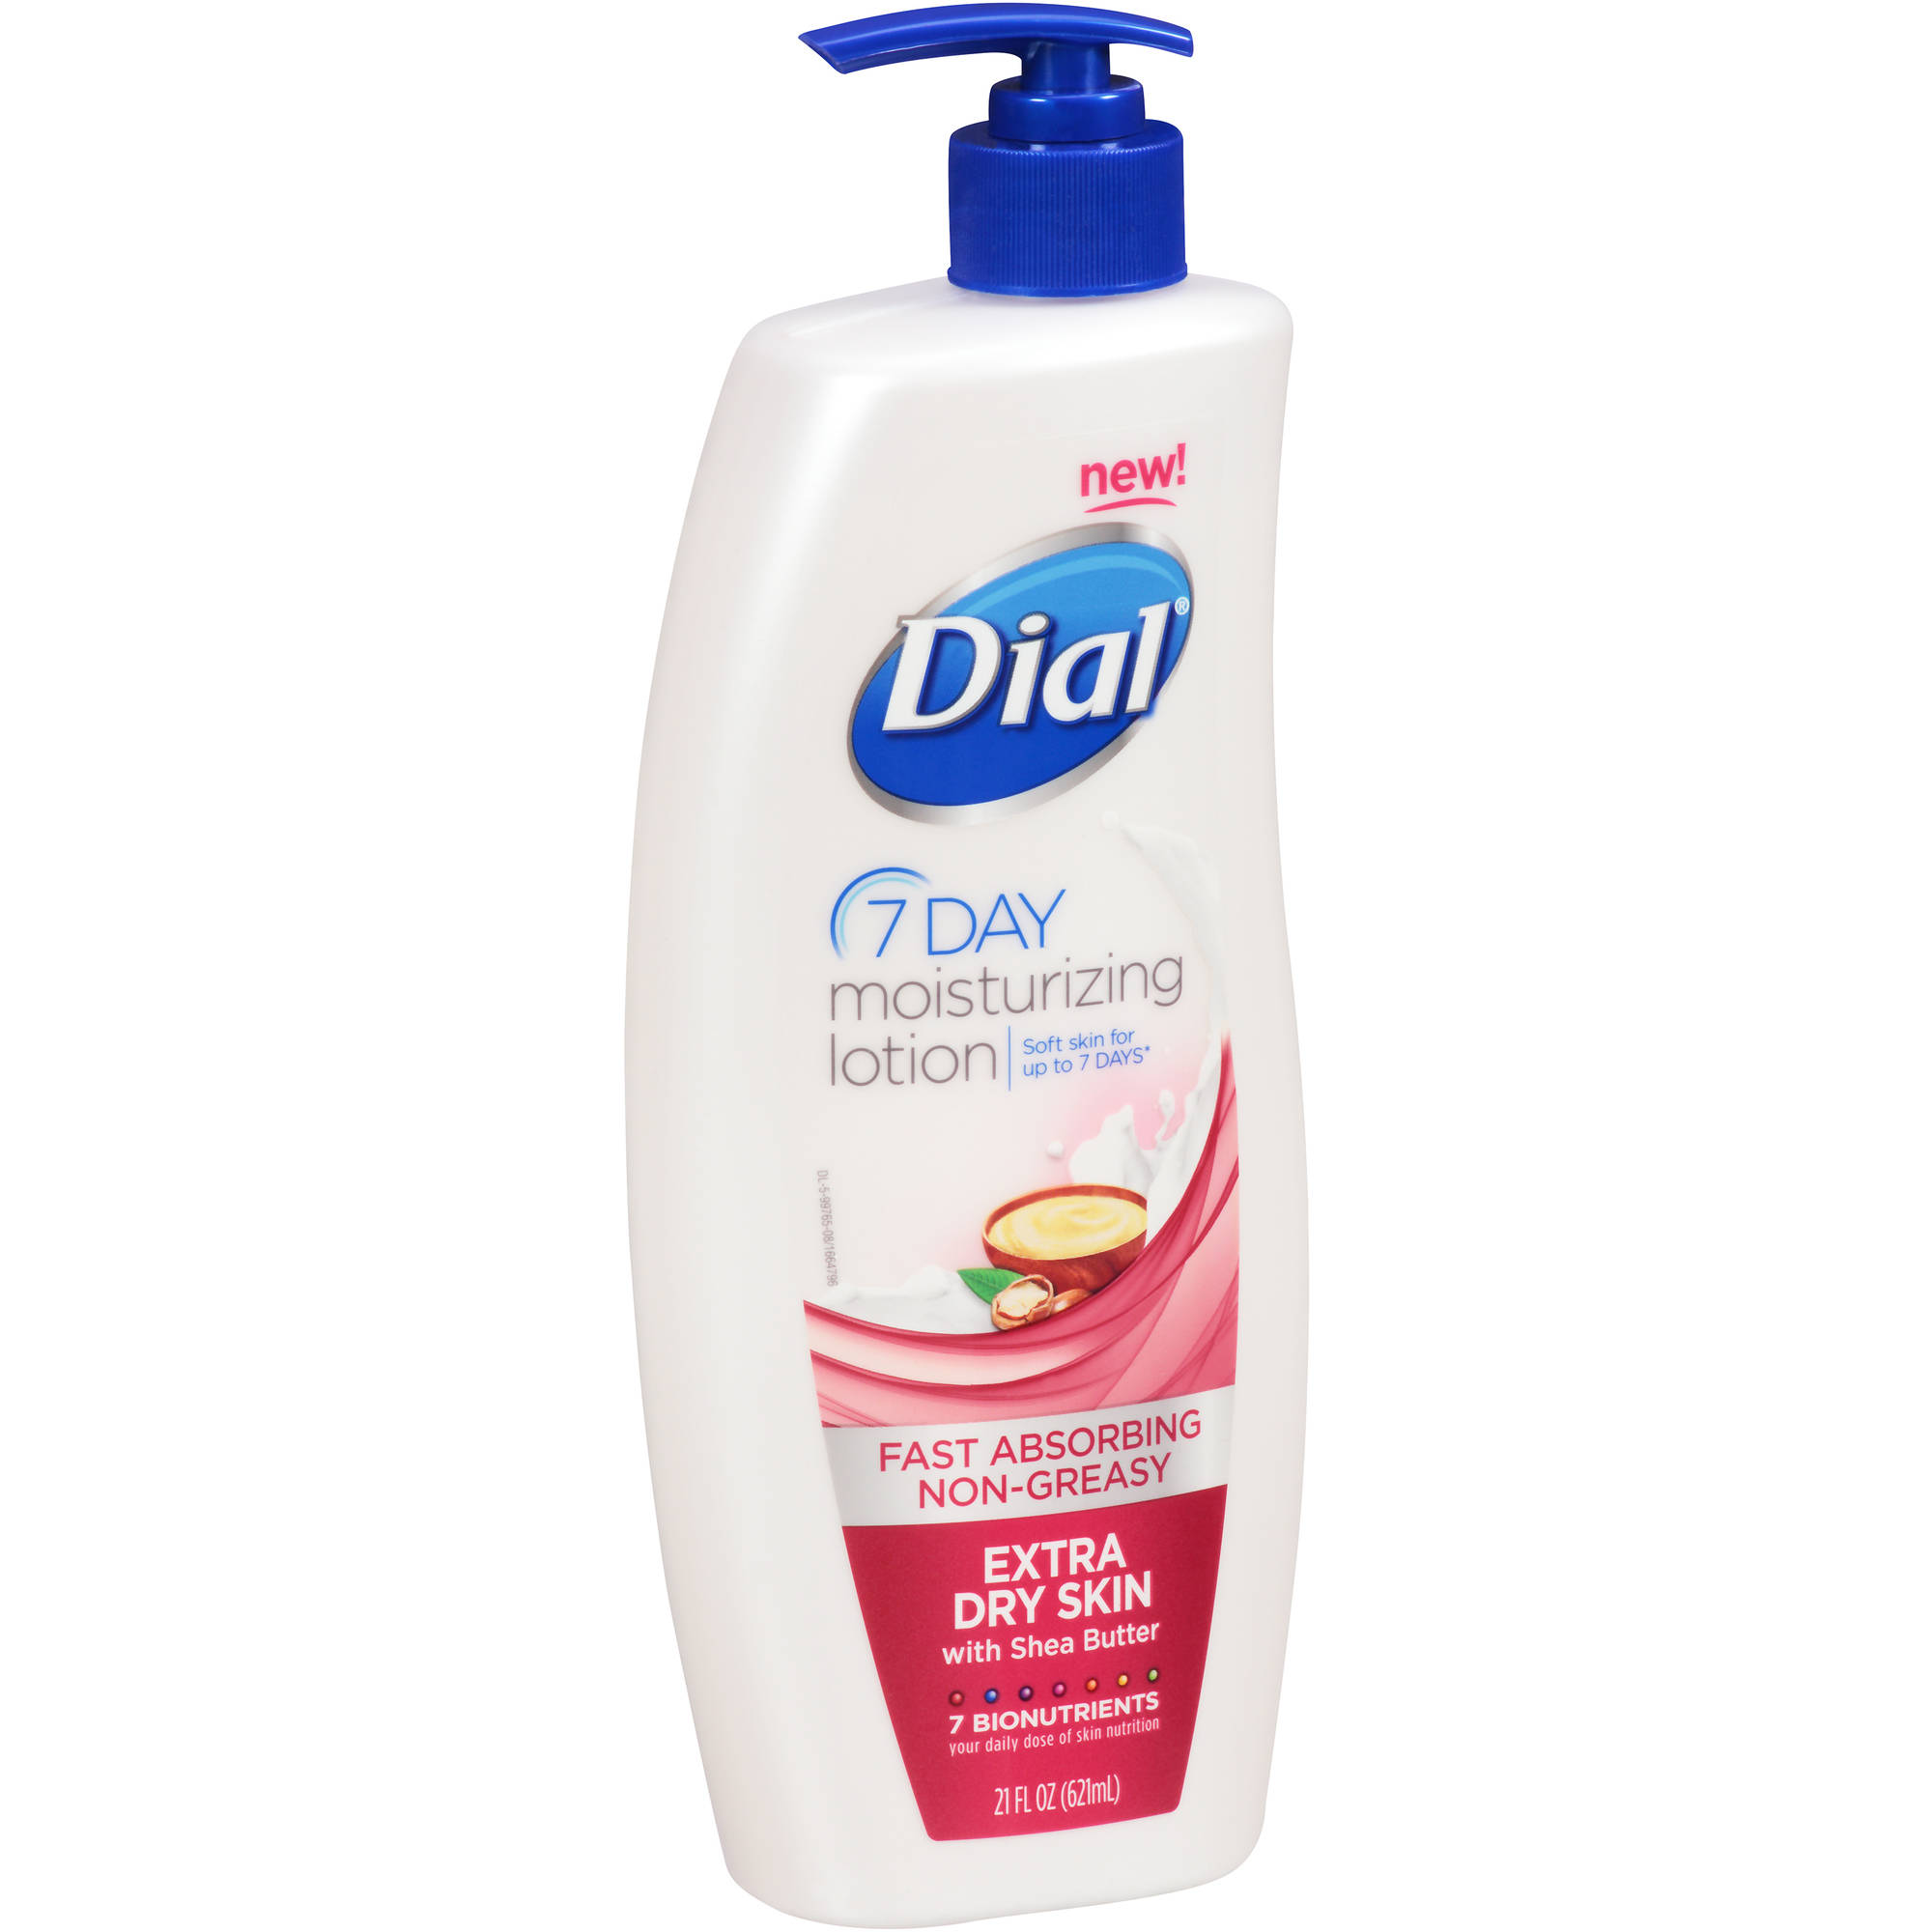 Dial Nutriskin Extra Dry Skin Lotion With Shea Butter, 21 oz